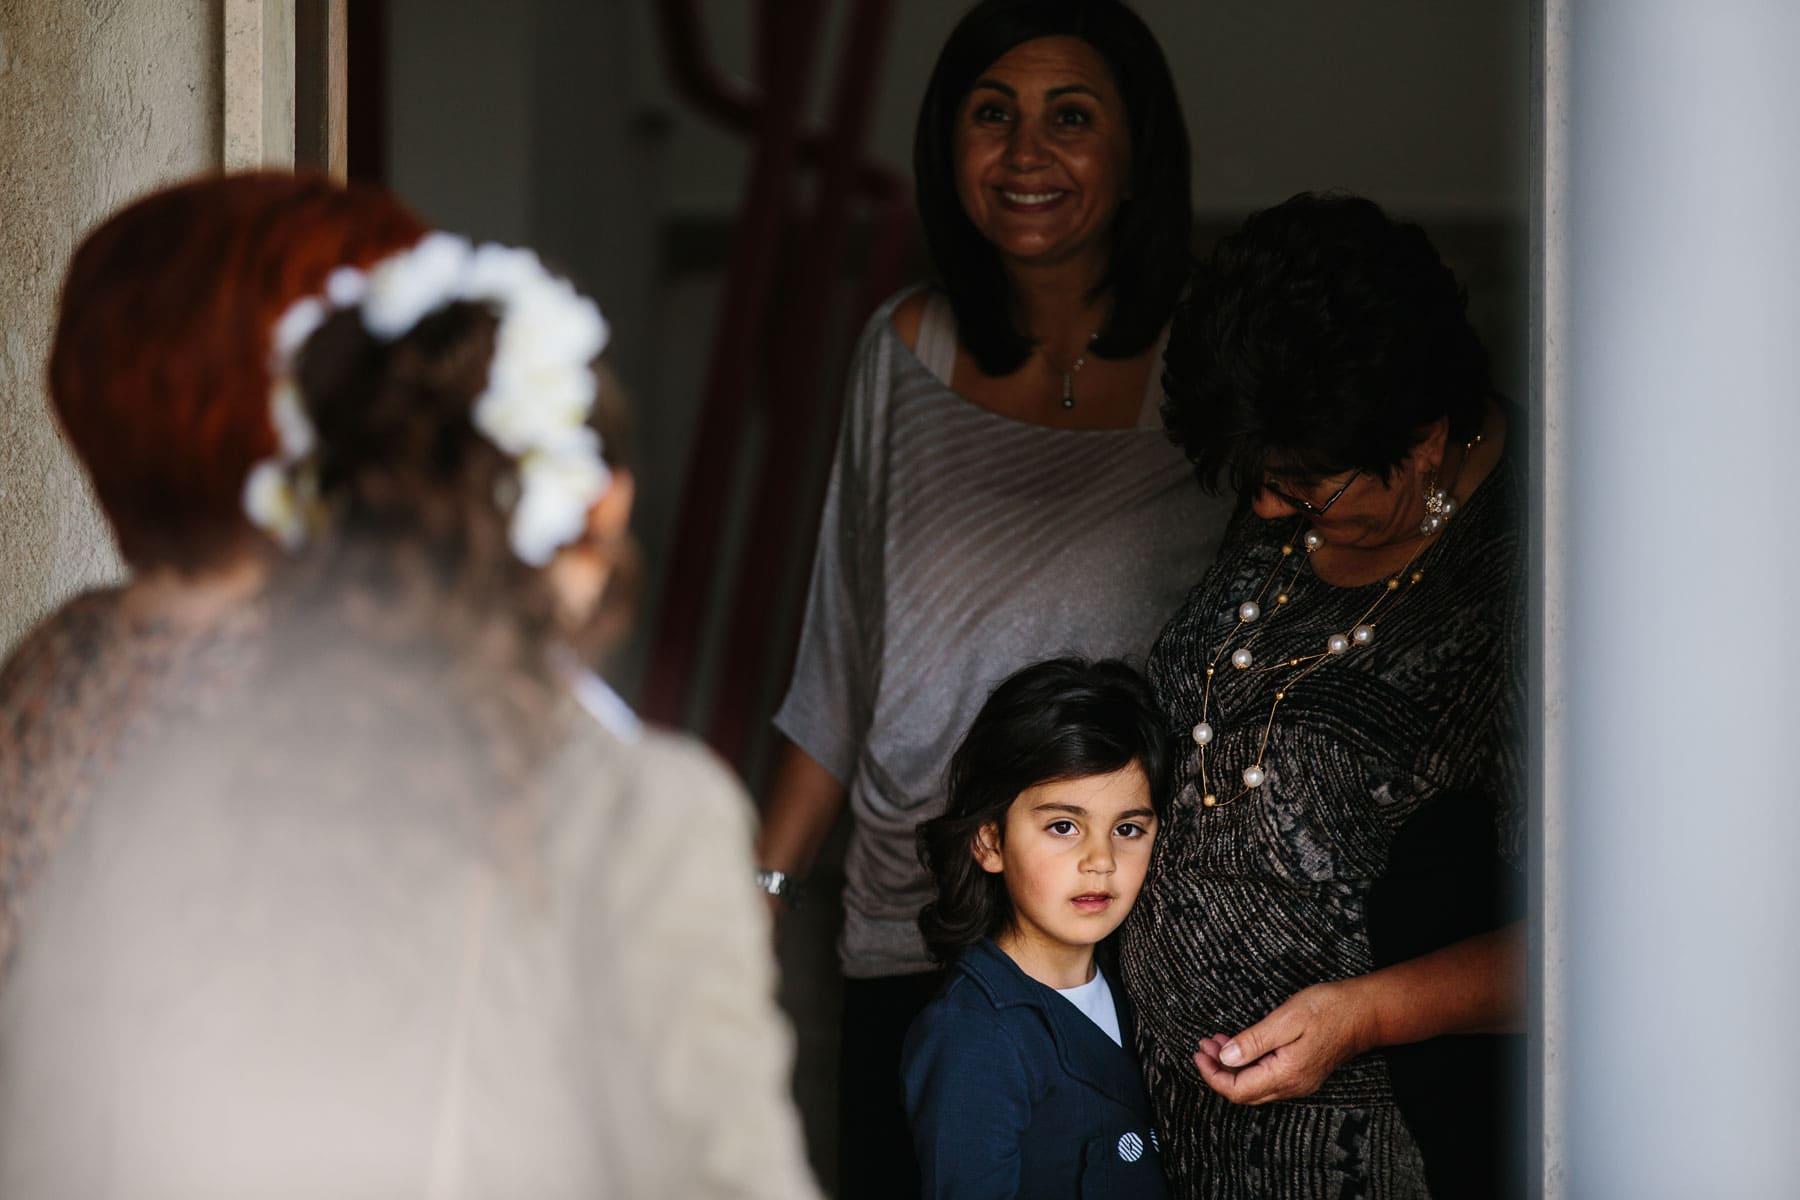 The bride and her mother say goodbye to several women and a girl in the doorway of a rural home at this Italian destination wedding in Castello Dal Pozzo.